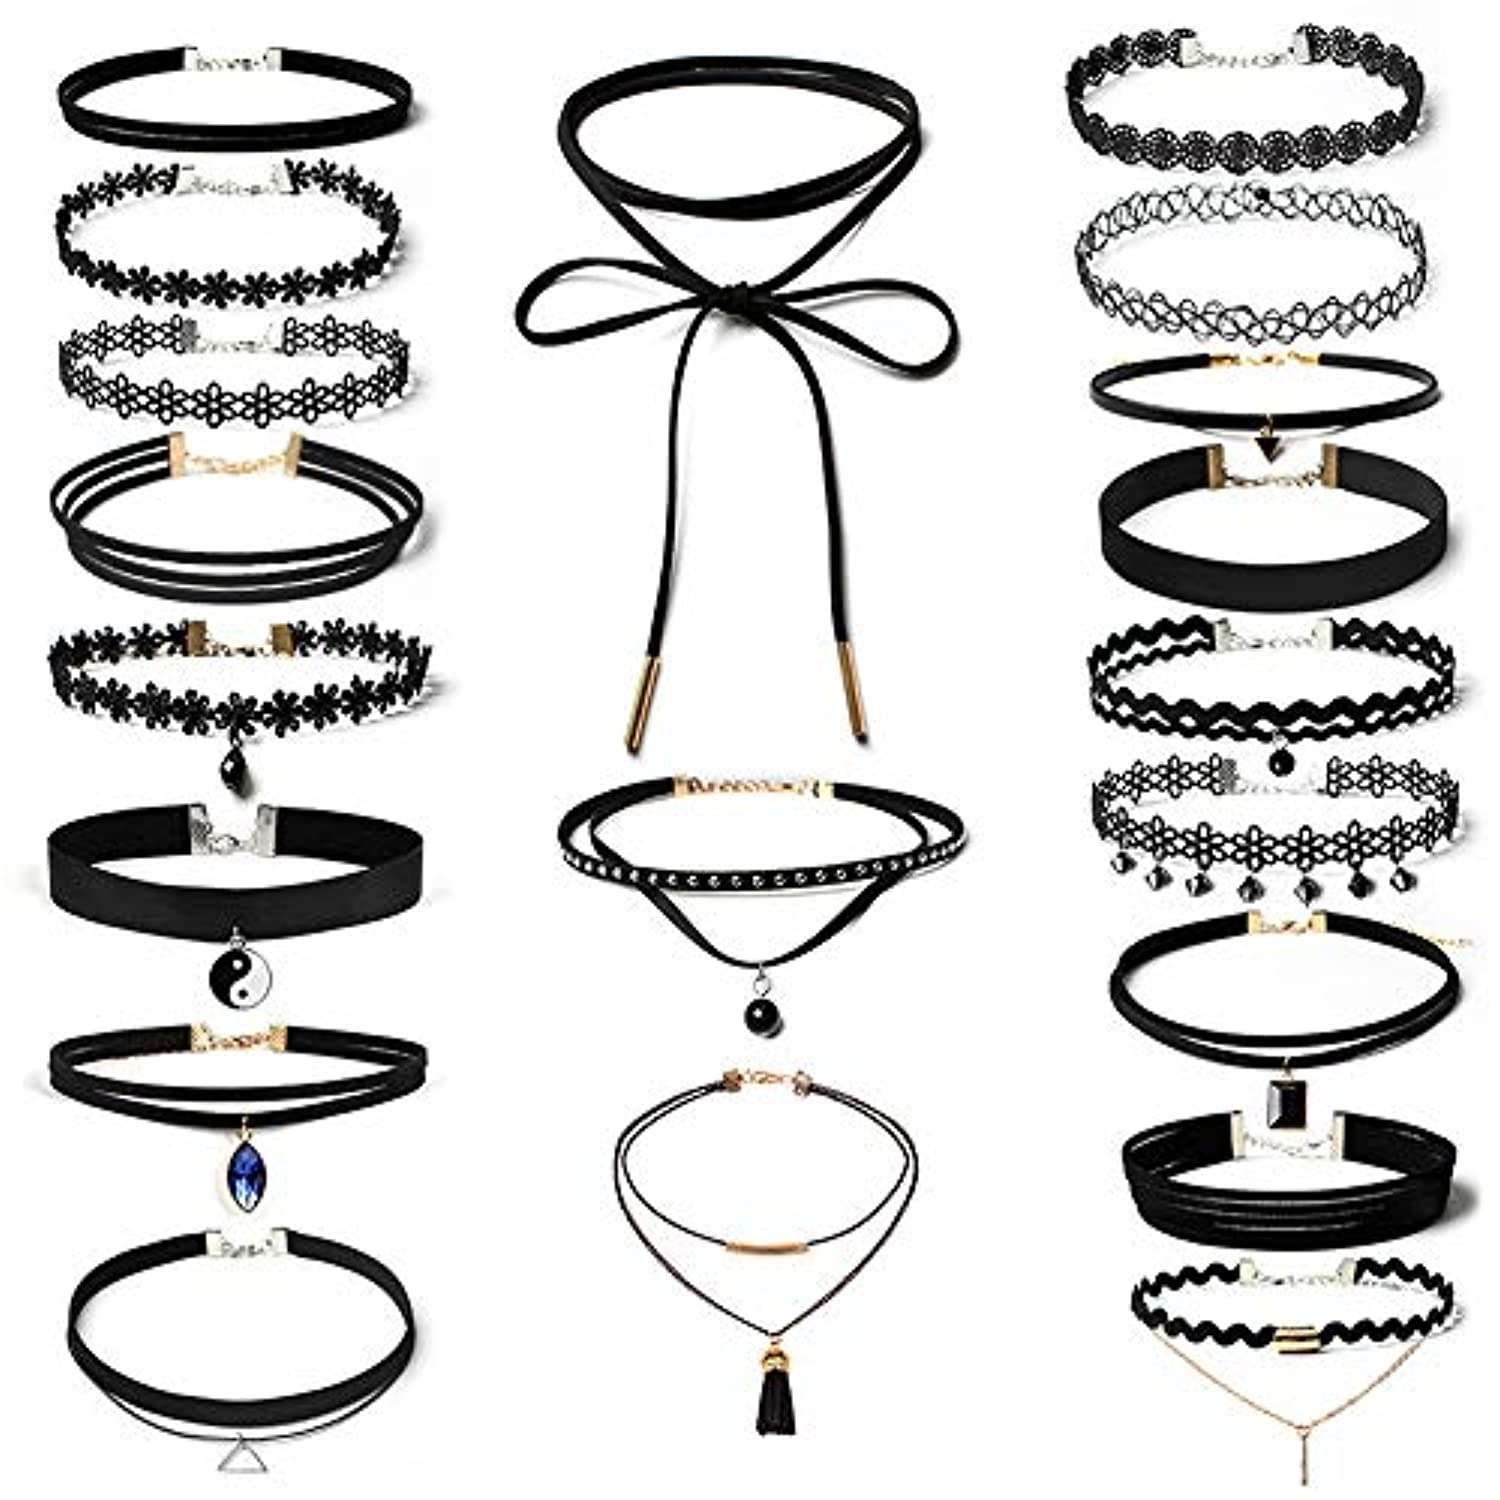 Nicircle 20個チョーカーネックレスセットストレッチベルベットクラシックゴシックタトゥーレースチョーカー 20Pieces Choker Necklace Set Stretch Velvet Classic Gothic...